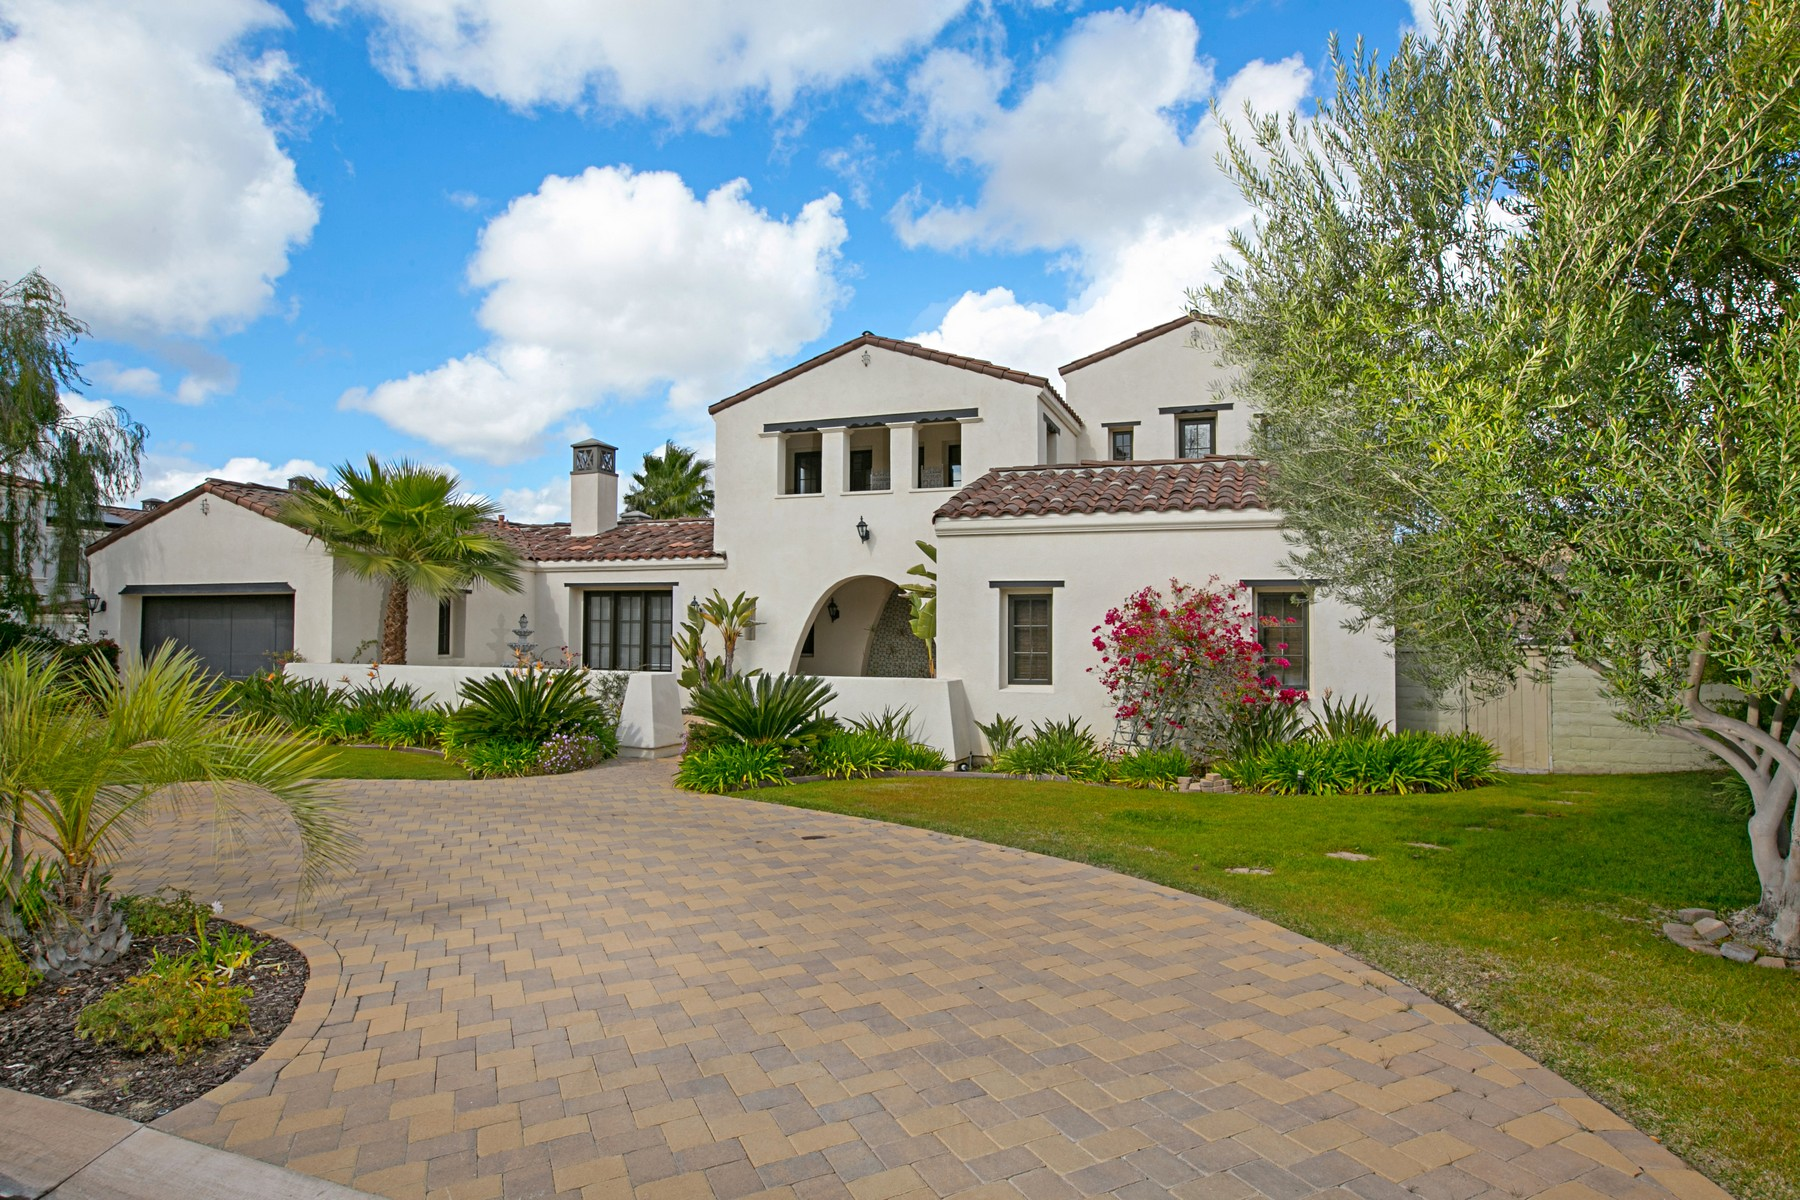 Single Family Home for Sale at 8261 Top O' The Morning Rancho Santa Fe, California, 92067 United States